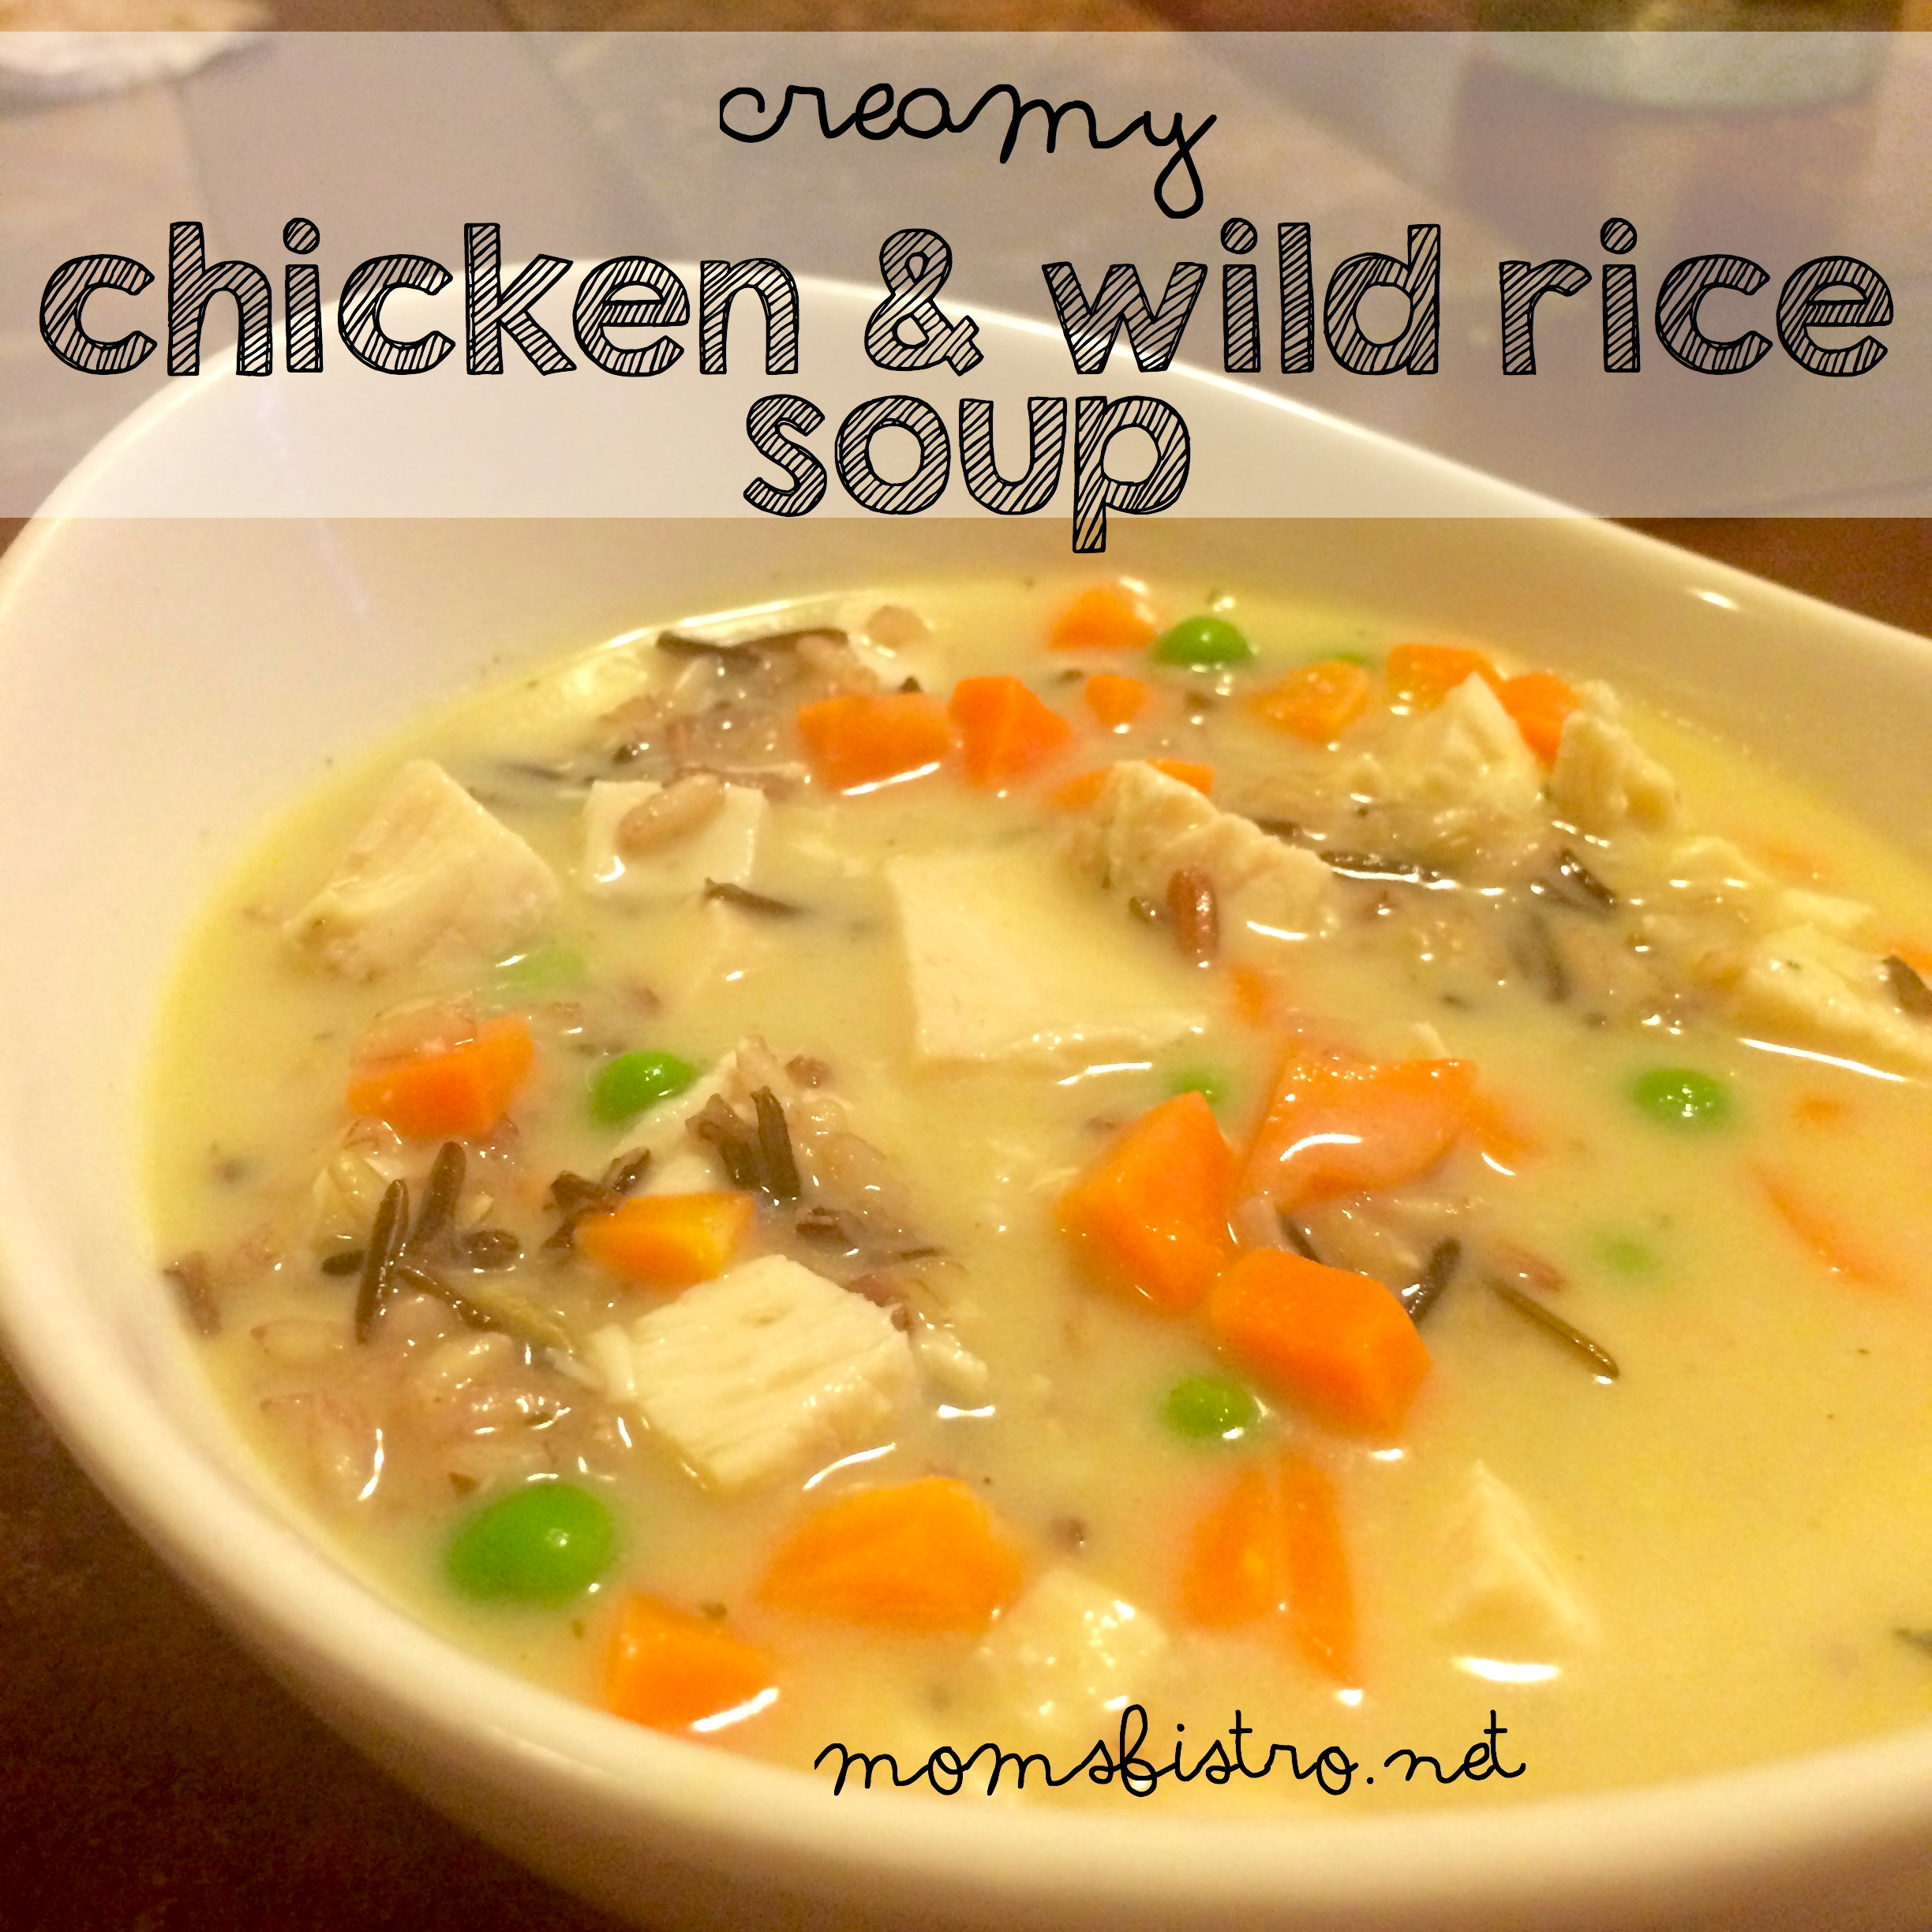 A Cozy Fall Twist on Leftovers Ready In Only 20 Minutes – Creamy Chicken and Wild Rice Soup with Leftover Chicken